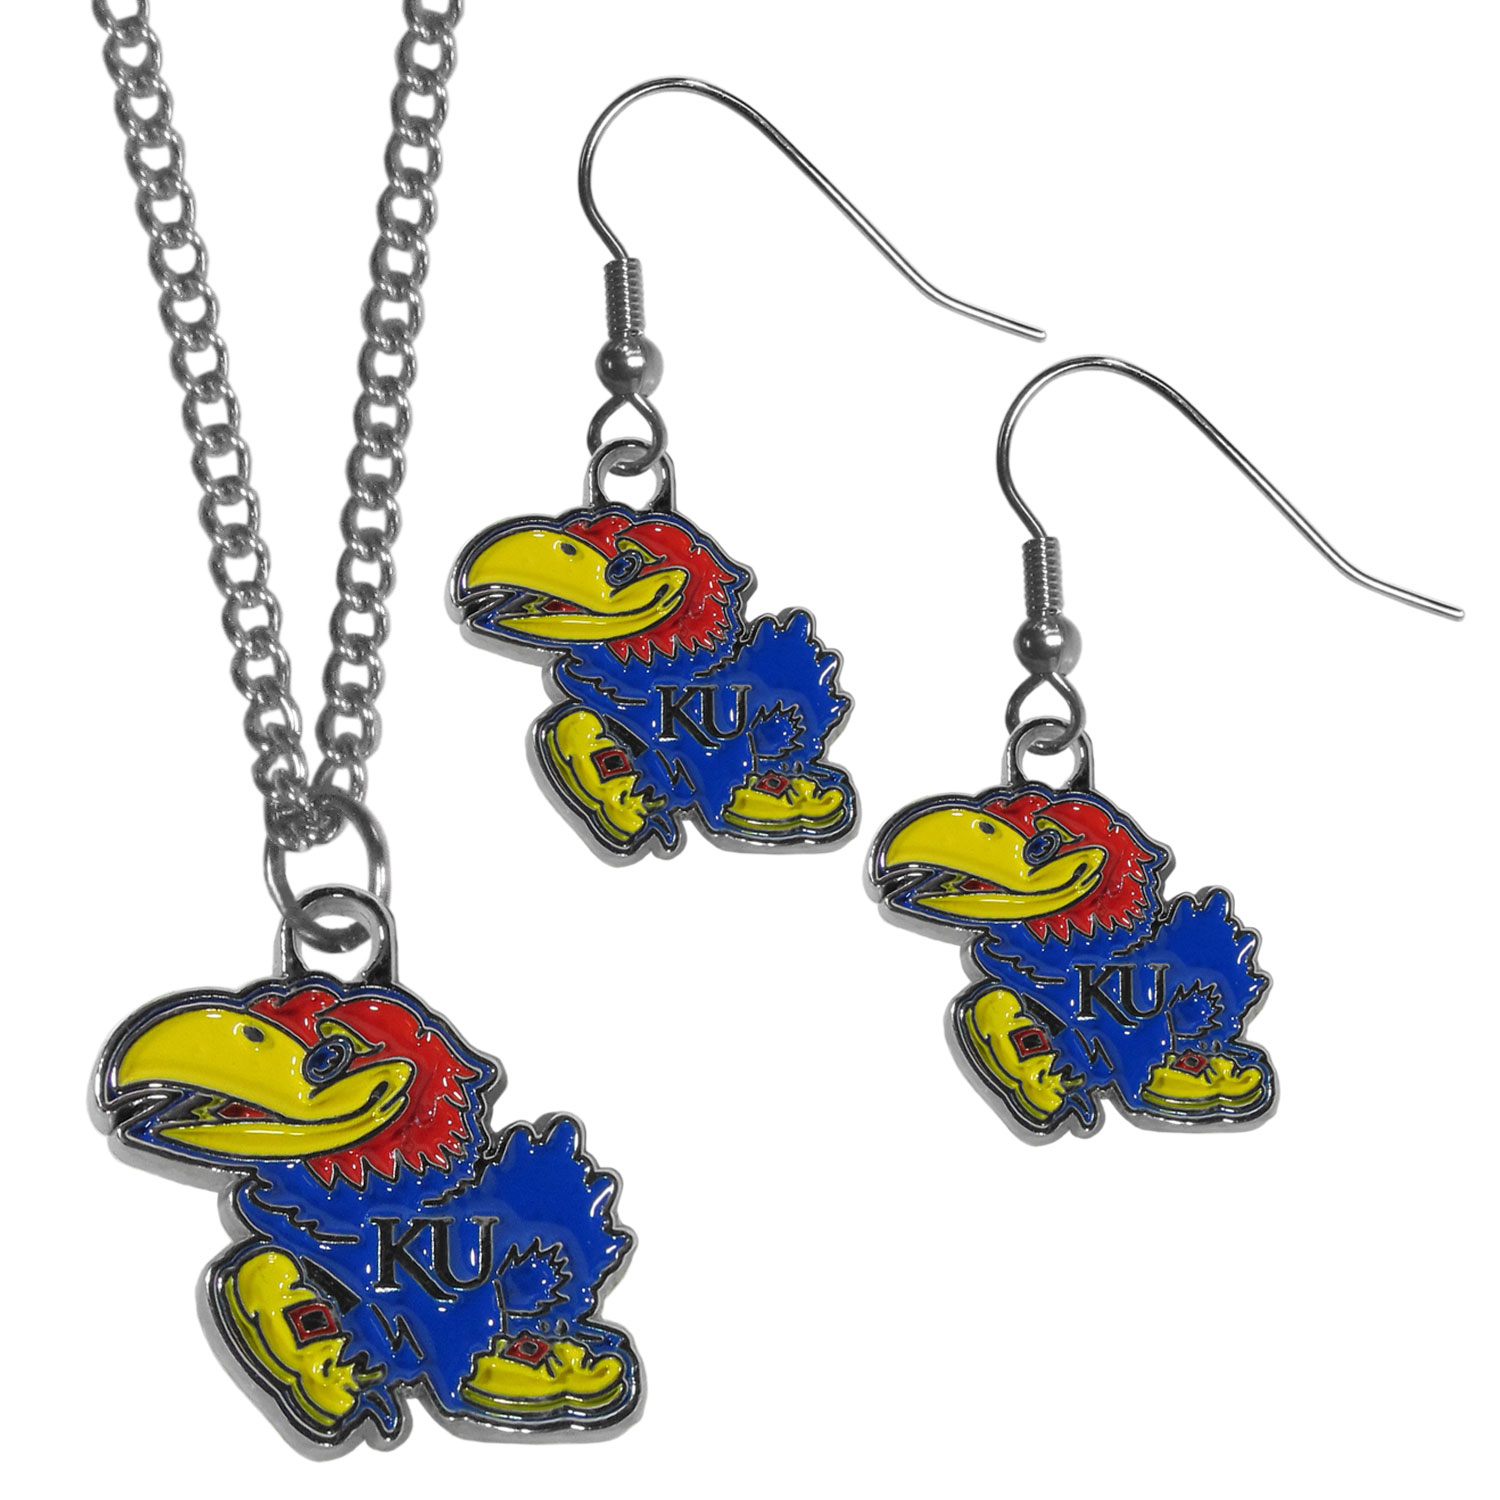 Kansas Jayhawks Dangle Earrings and Chain Necklace Set - This classic jewelry set contains are most popular Kansas Jayhawks dangle earrings and 22 inch chain necklace. The trendy, dangle earrings are lightweight and feature a fully cast metal team charm with enameled team colors. The matching necklace completes this fashion forward combo and is a spirited set that is perfect for game day but nice enough for everyday.